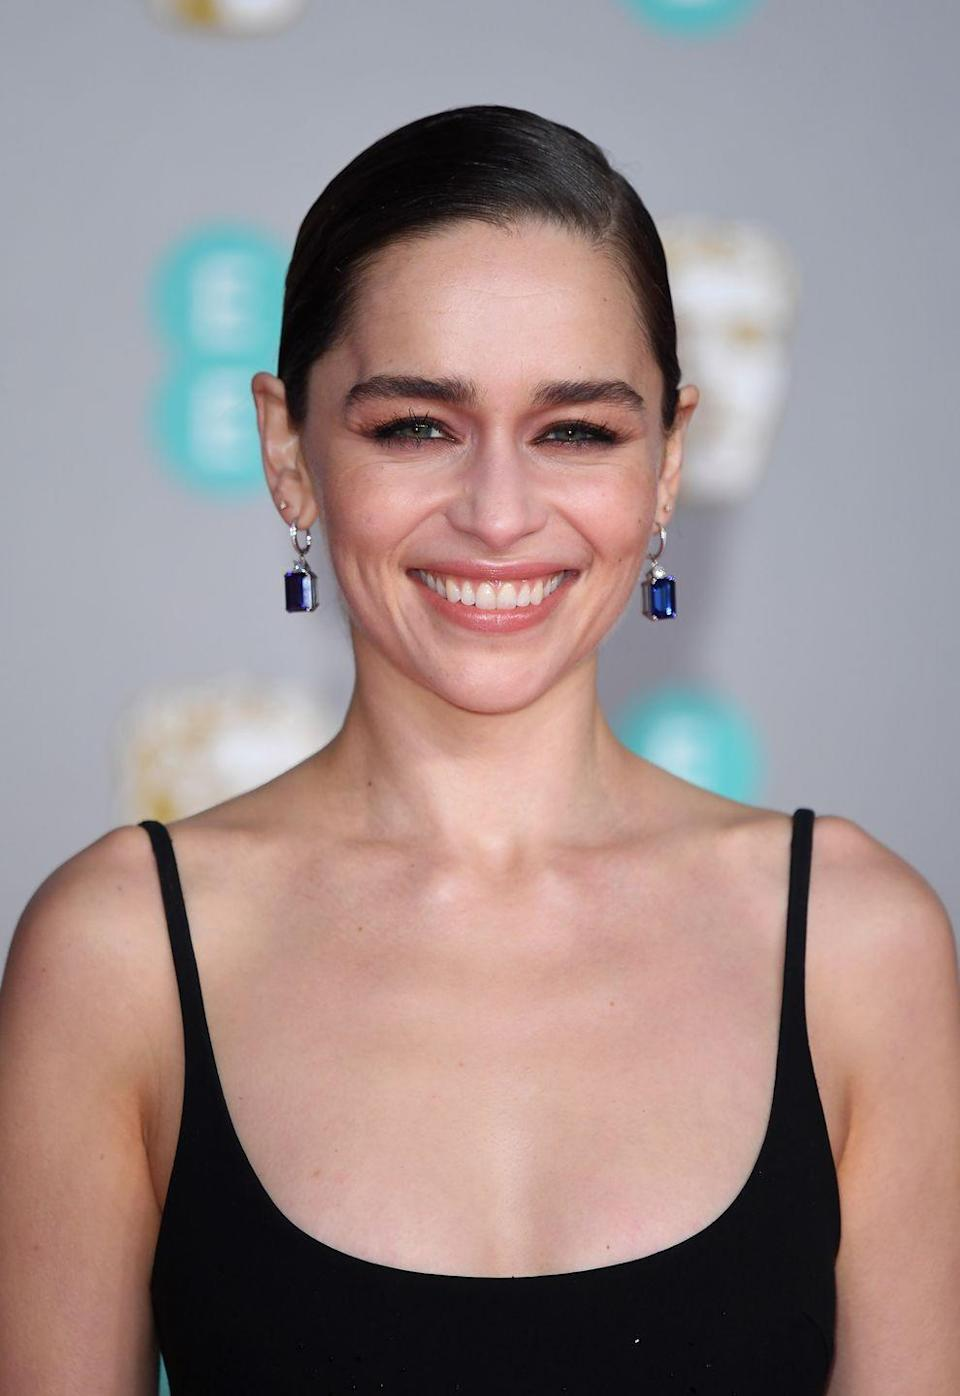 "<p>While Clarke was trying to make a name for herself as a movie star and not just the star of <em>Game of Thrones</em>, she took a role in <em>Terminator Genisys</em>…something she now regrets. </p><p>In an interview with <a href=""https://www.vanityfair.com/hollywood/2018/05/emilia-clarke-cover-story"" rel=""nofollow noopener"" target=""_blank"" data-ylk=""slk:Vanity Fair"" class=""link rapid-noclick-resp""><em>Vanity Fair</em></a>, she said that she watched director Alan Taylor, who frequently directed <em>GoT</em>, get ""eaten and chewed up on <em>Terminator</em>. He was not the director I remembered. He didn't have a good time. No one had a good time."" </p><p>She added that she was ""relieved"" that the film didn't do well at the box office so that she wouldn't have to do any sequels.</p>"